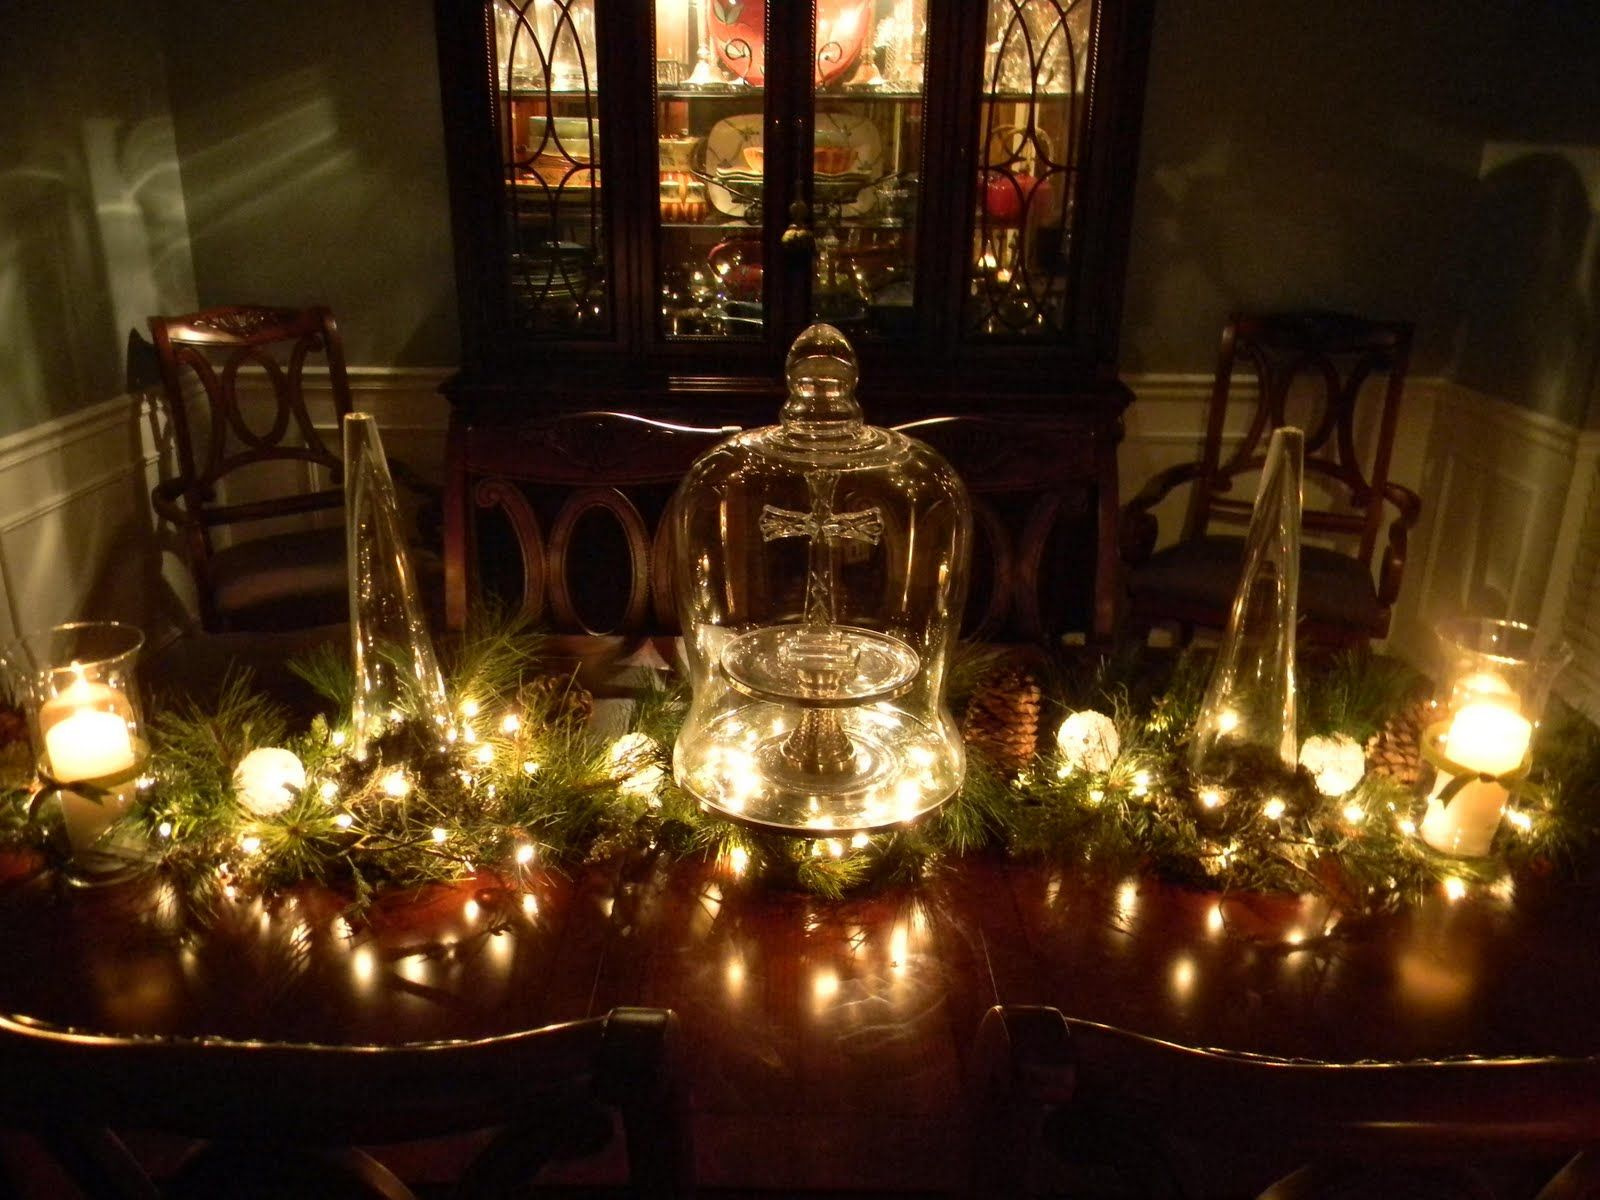 Romantic Christmas Decorations Ideas Table With Glass Candle Hold Christmas Table Decorations Dining Room Table Centerpieces Christmas Decorations Dinner Table